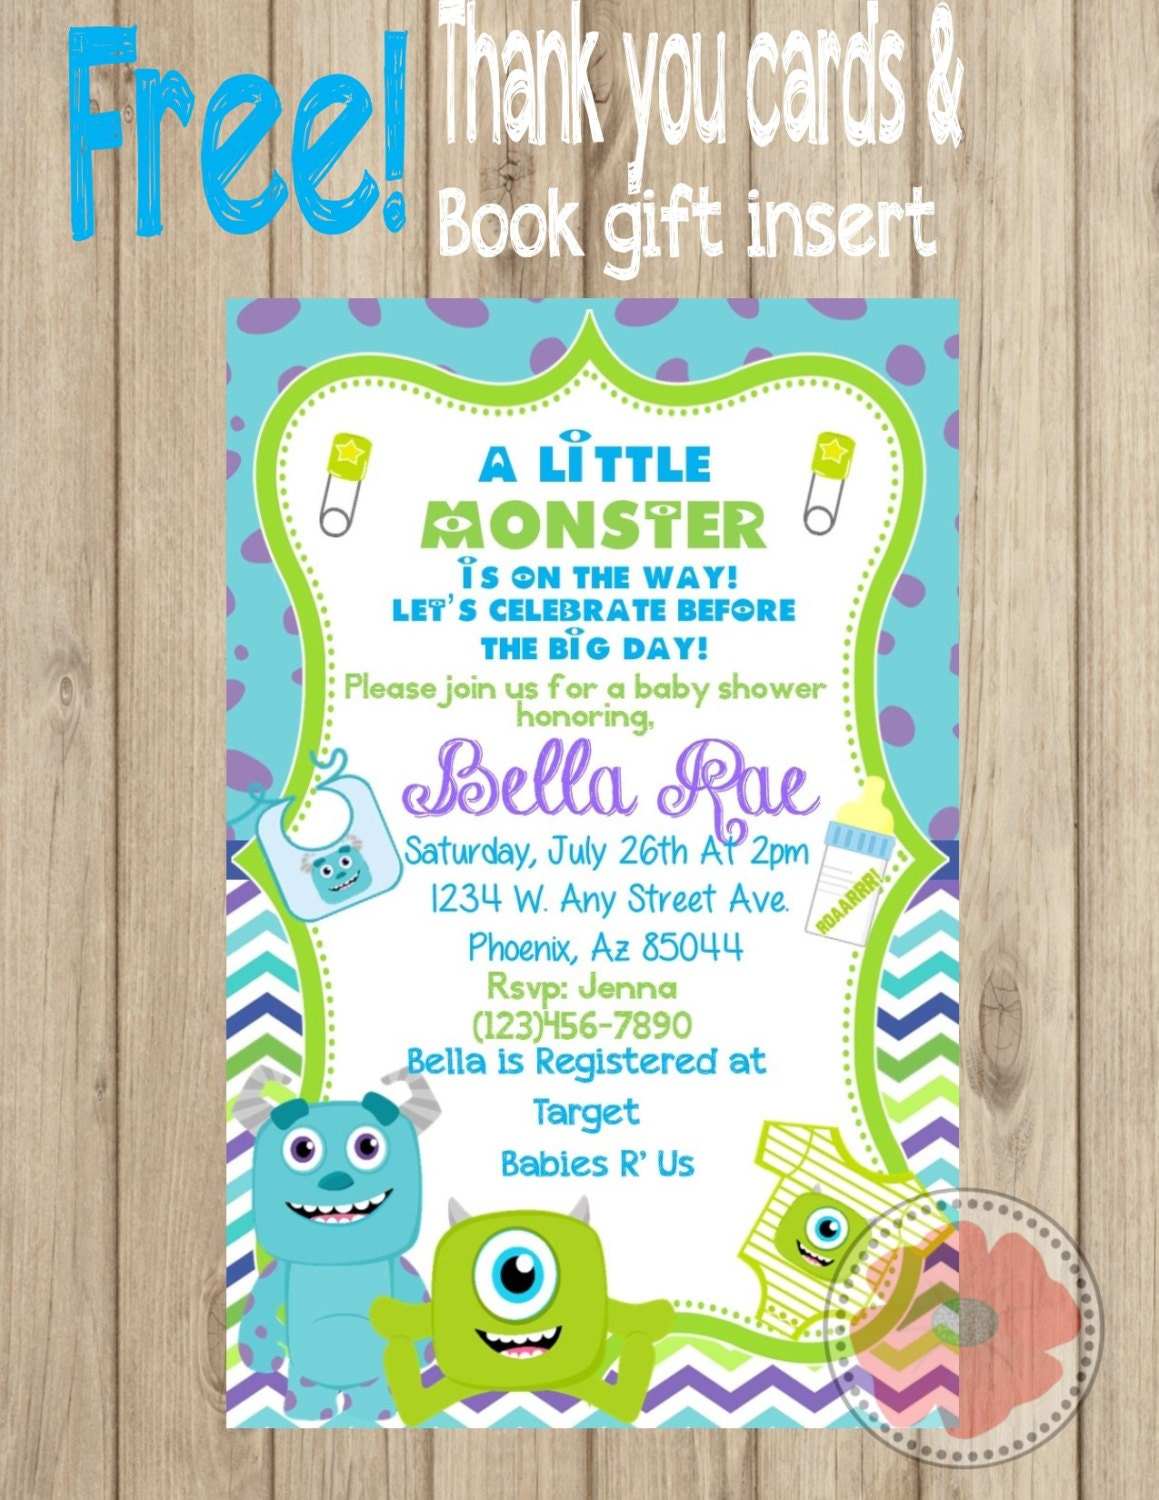 Monsters Inc Inspired Baby Shower Invitation | Shower invitations ...